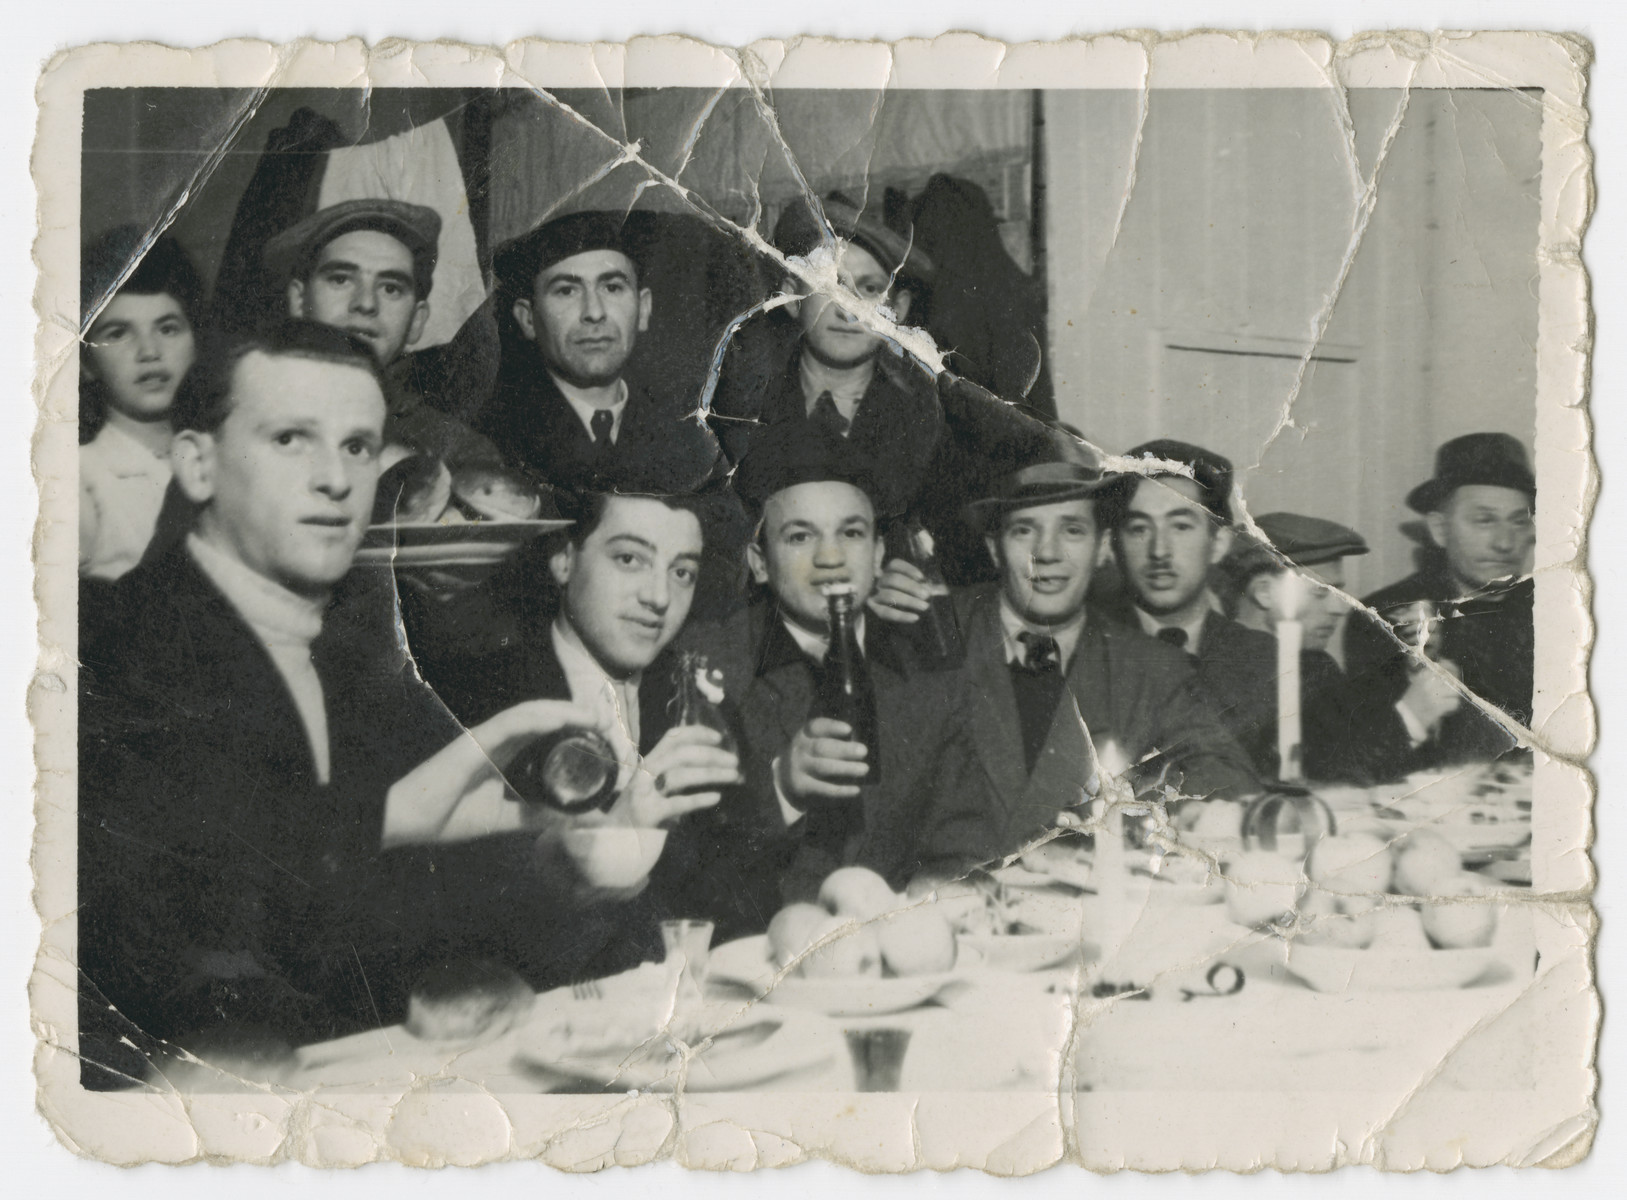 A group of men and women gather for a festive meal in the Bergen-Belsen displaced persons camp.  Among those pictured are David and Anna Rosenzweig, and their cousins Ben and Joe Rosenzweig.